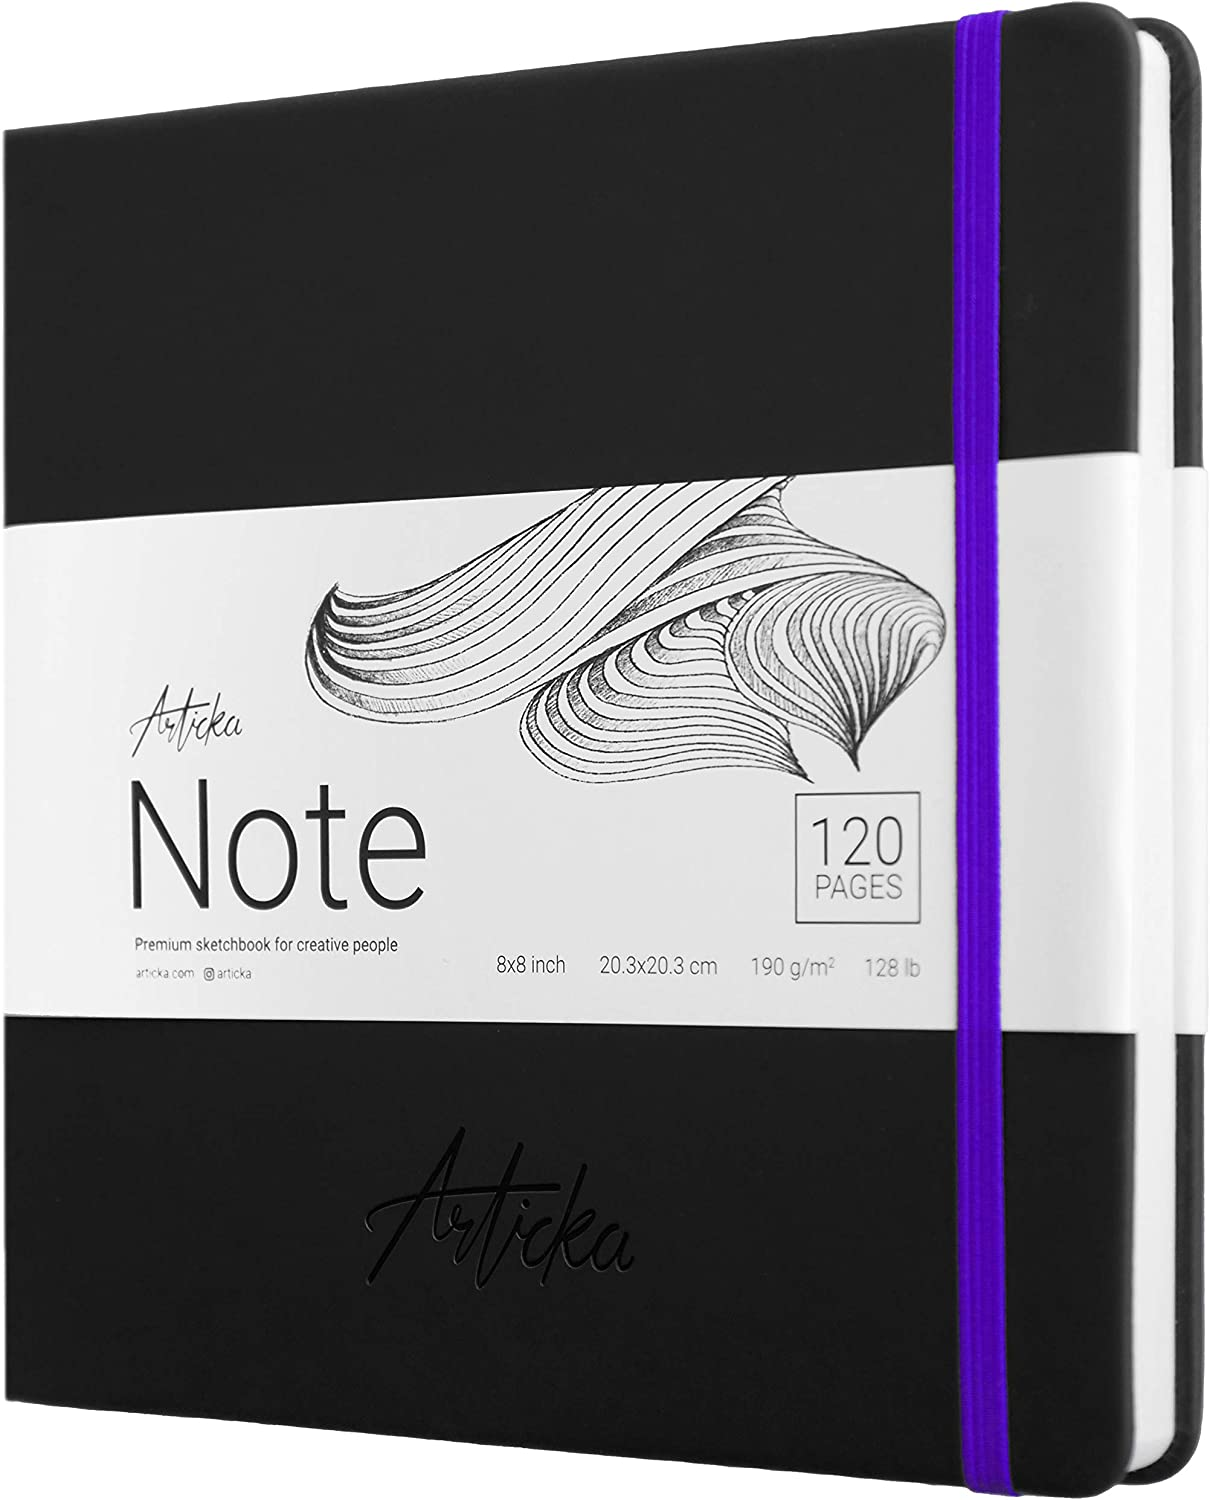 Articka Note Sketchbook – Square Hardbound